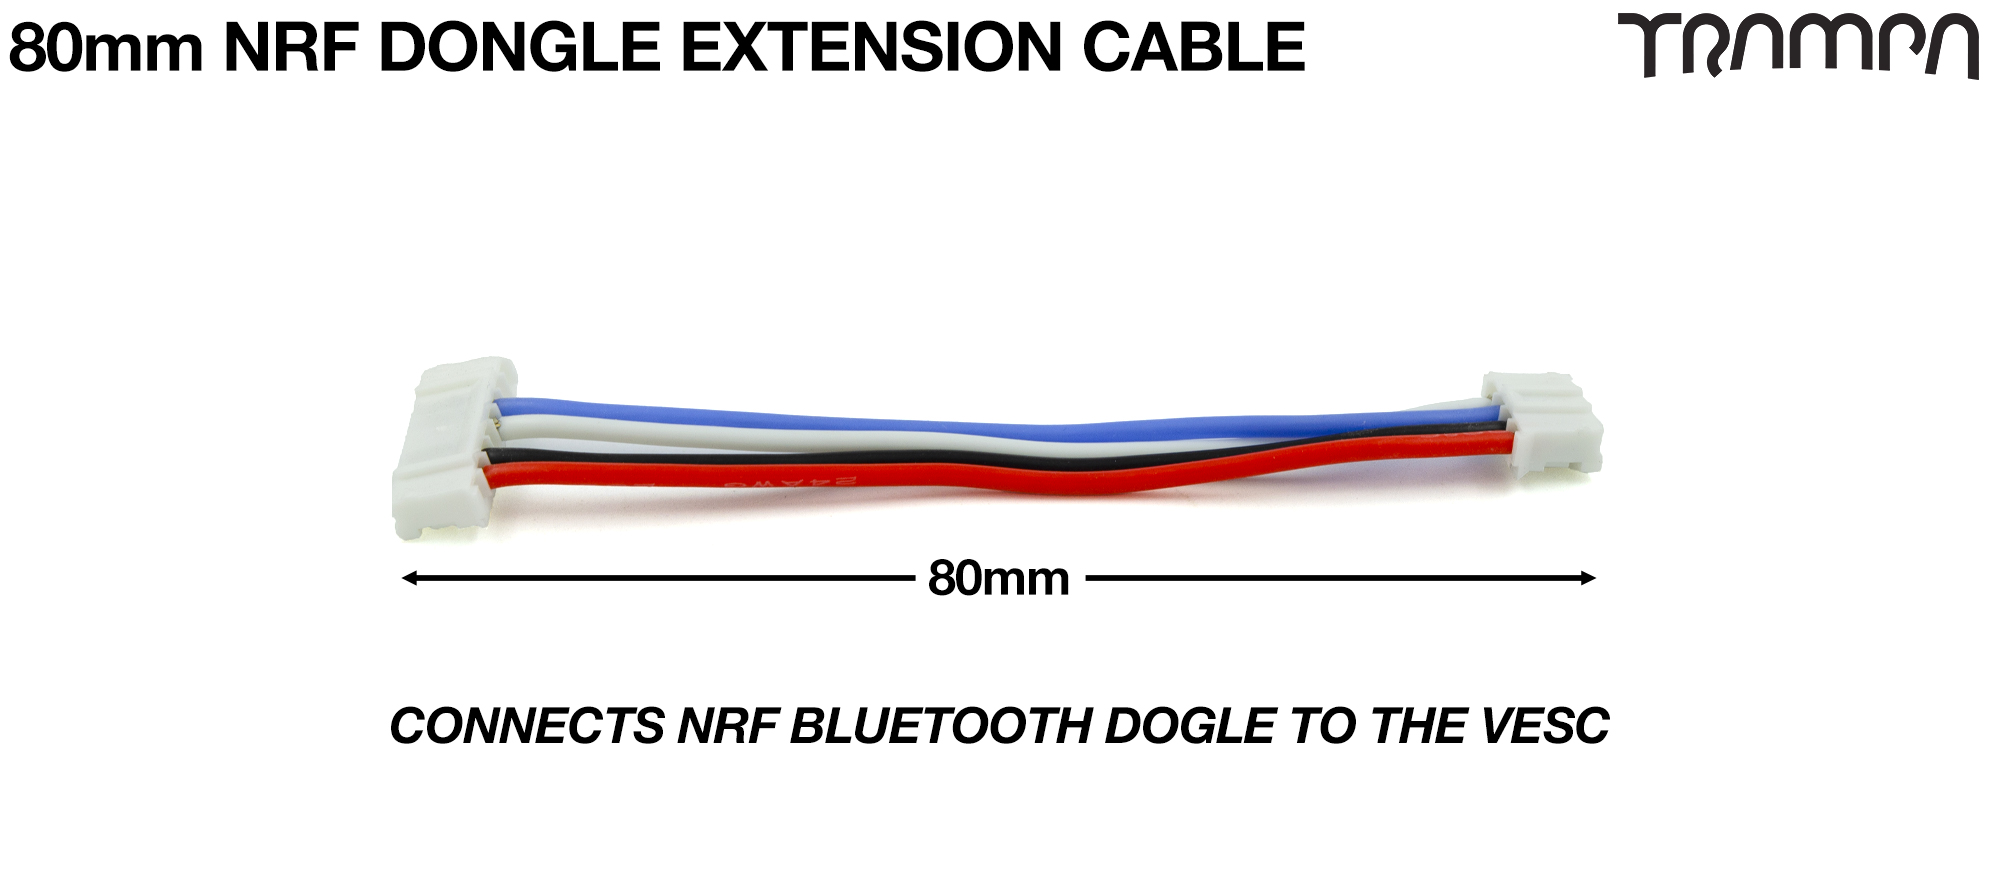 NRF Dongle Extender cable 80mm